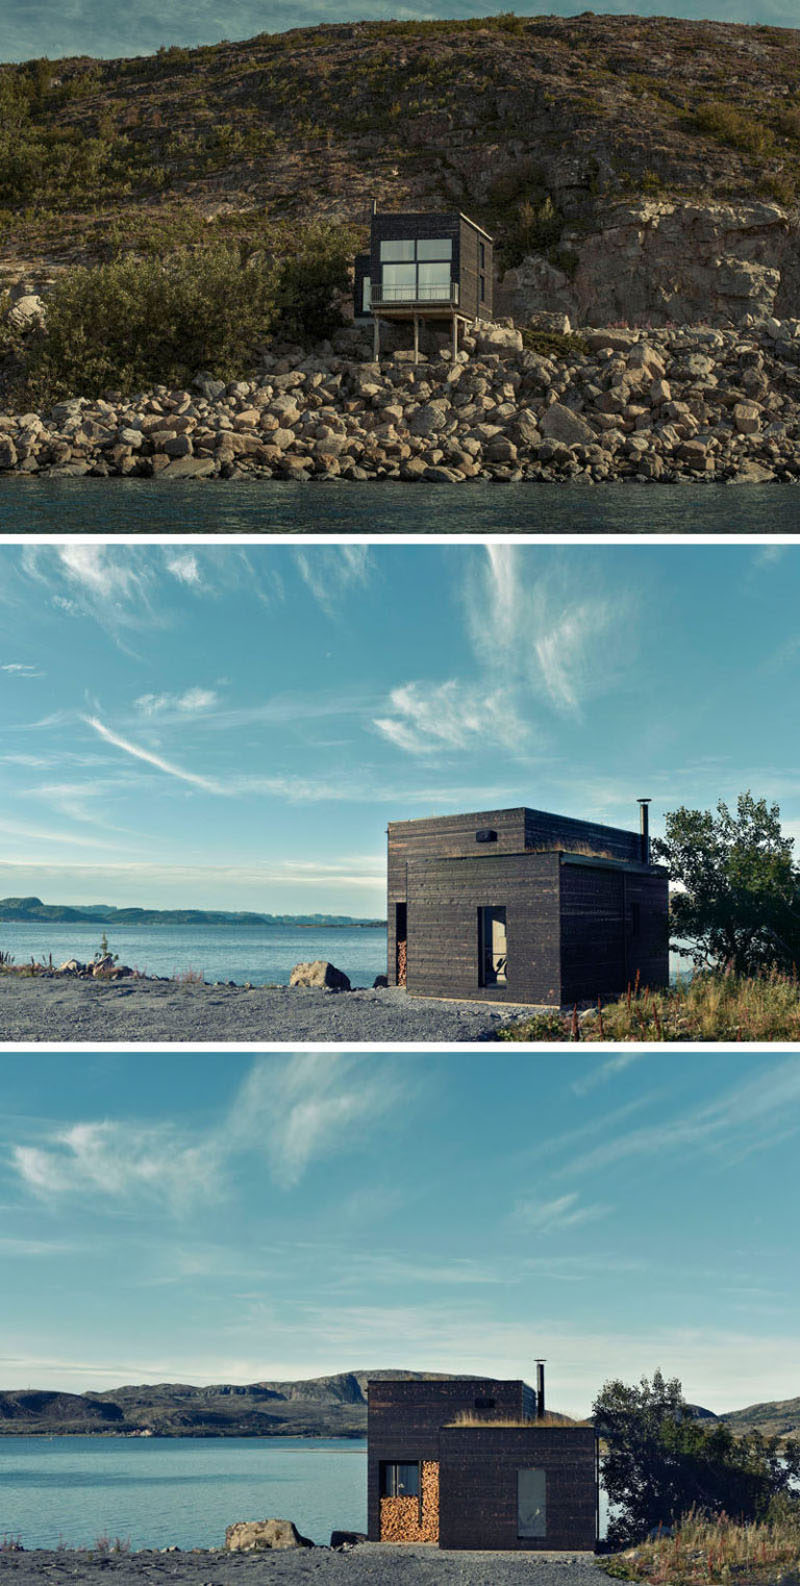 11 Small Modern House Designs // Tucked into the rocks of the Norwegian coast, this small dark wood home is just big enough to create a cozy space for one or two people.